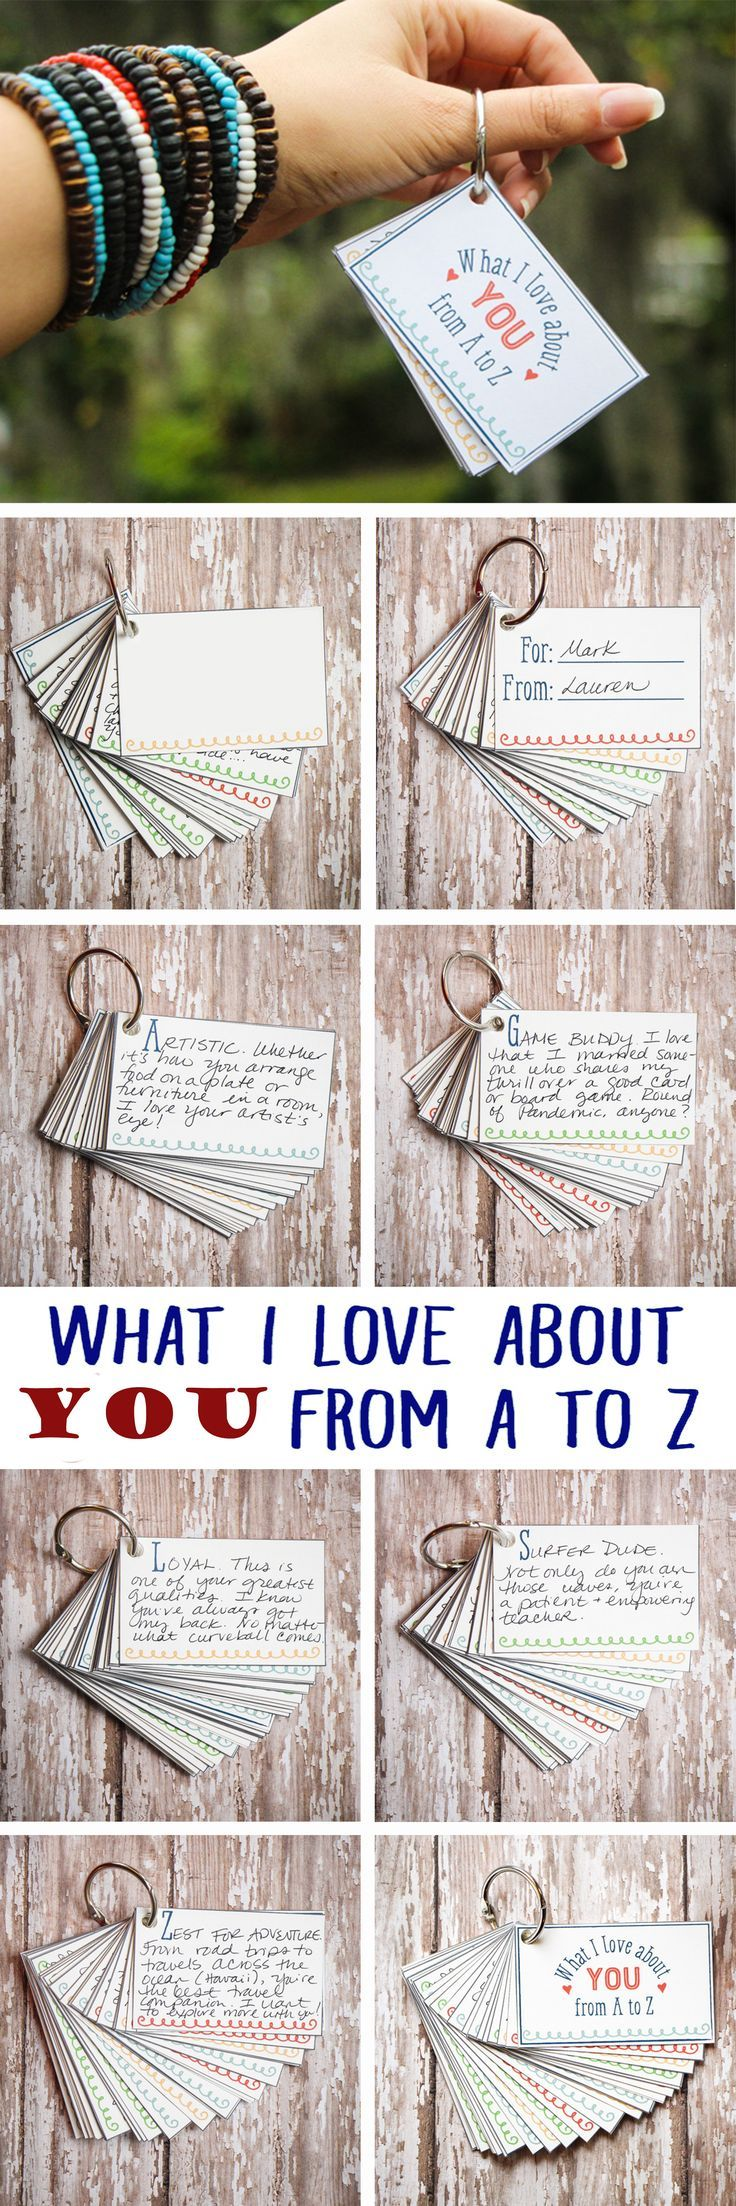 Diy Geburtstagsgeschenke Gifts For Him I Love About You From A To Z Mini Book Diy